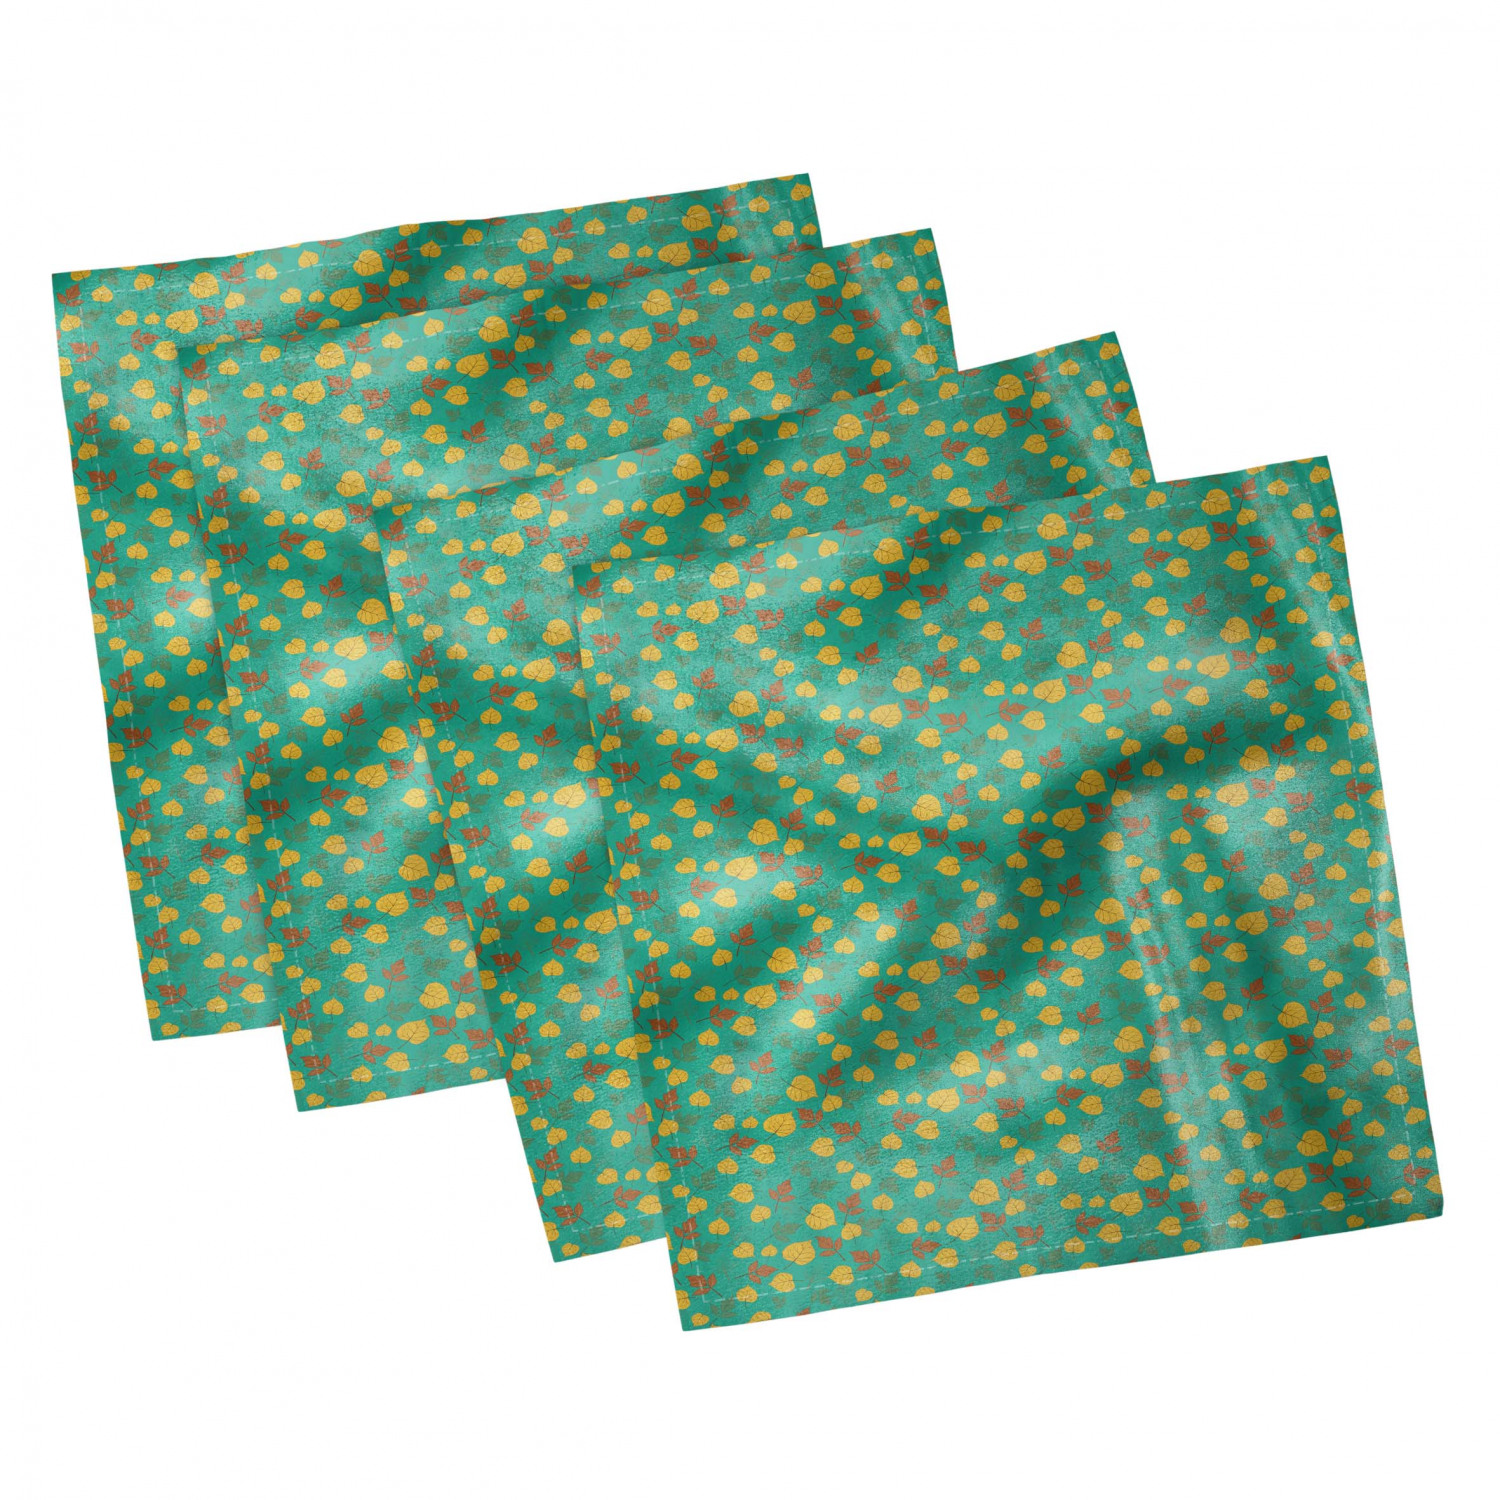 thumbnail 33 - Ambesonne-Autumn-Fall-Decorative-Satin-Napkins-Set-of-4-Party-Dinner-Fabric